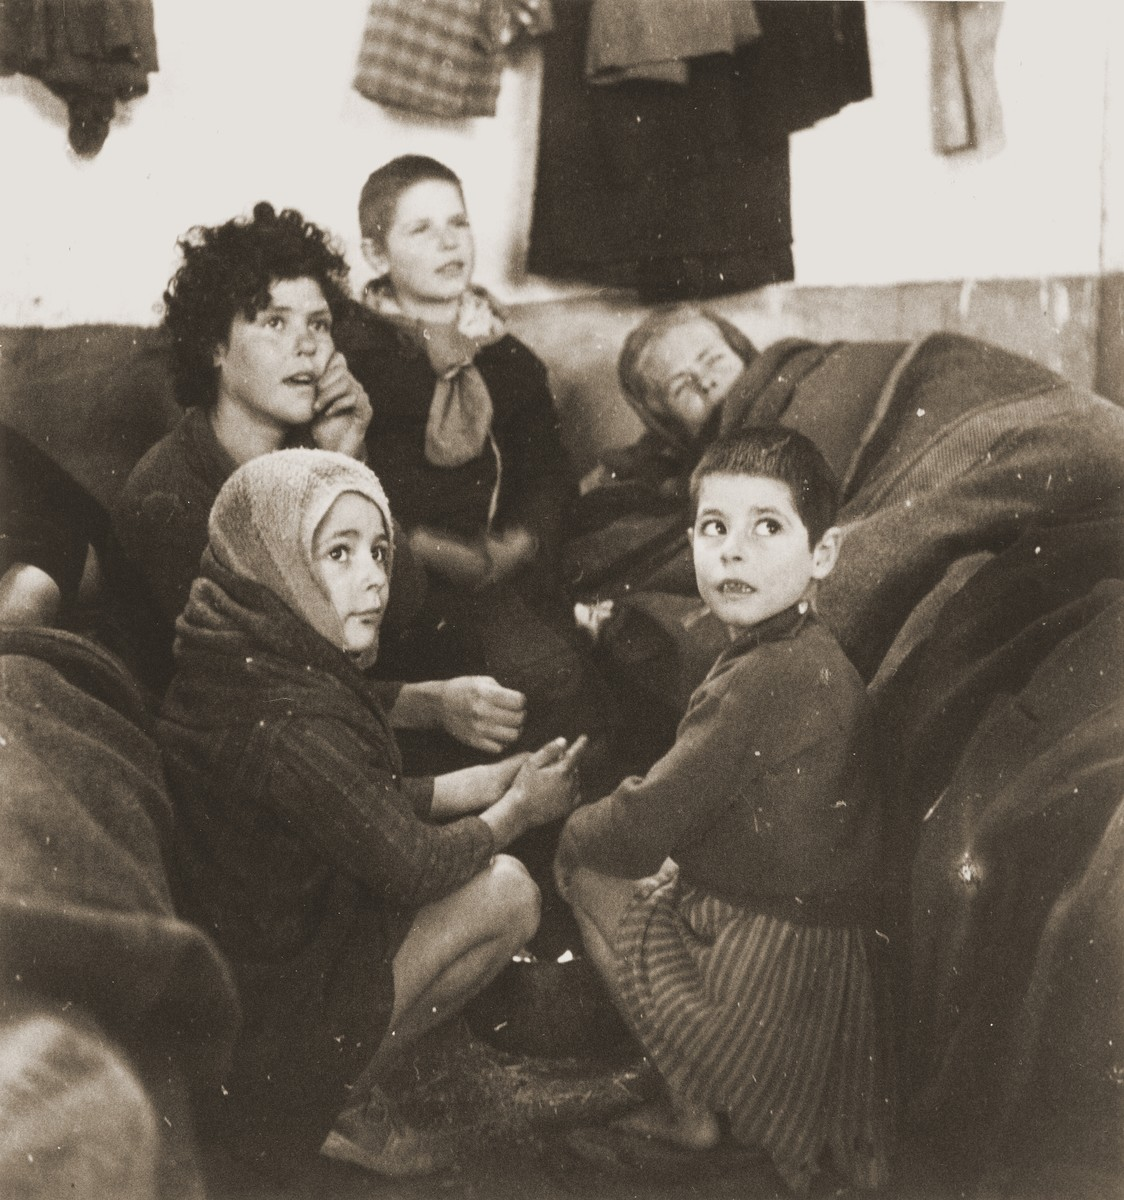 Women and children try to stay warm in their Rivesaltes barracks.